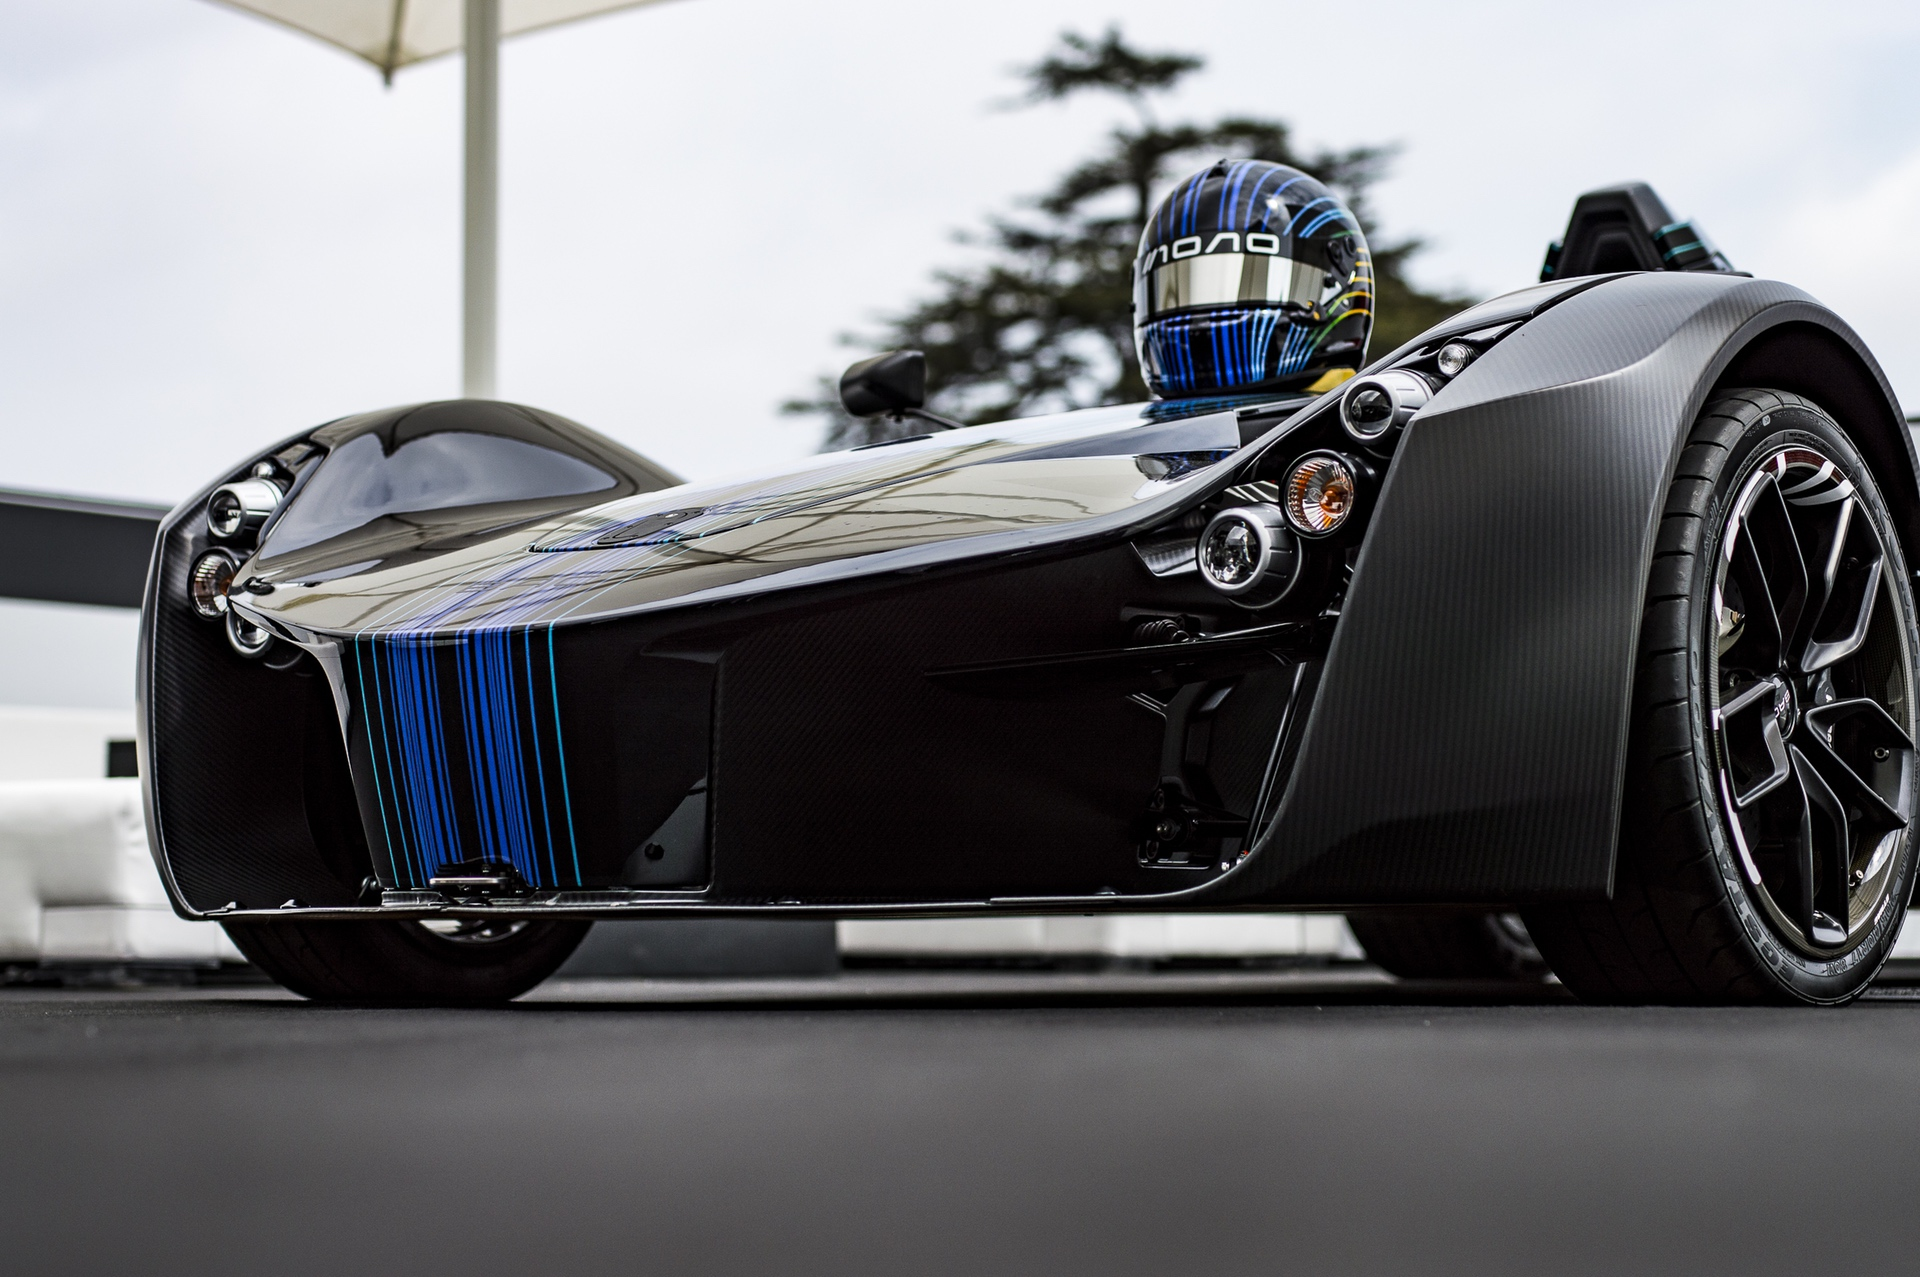 BAC_Mono_Goodwood_Hillclimb_Record_0012